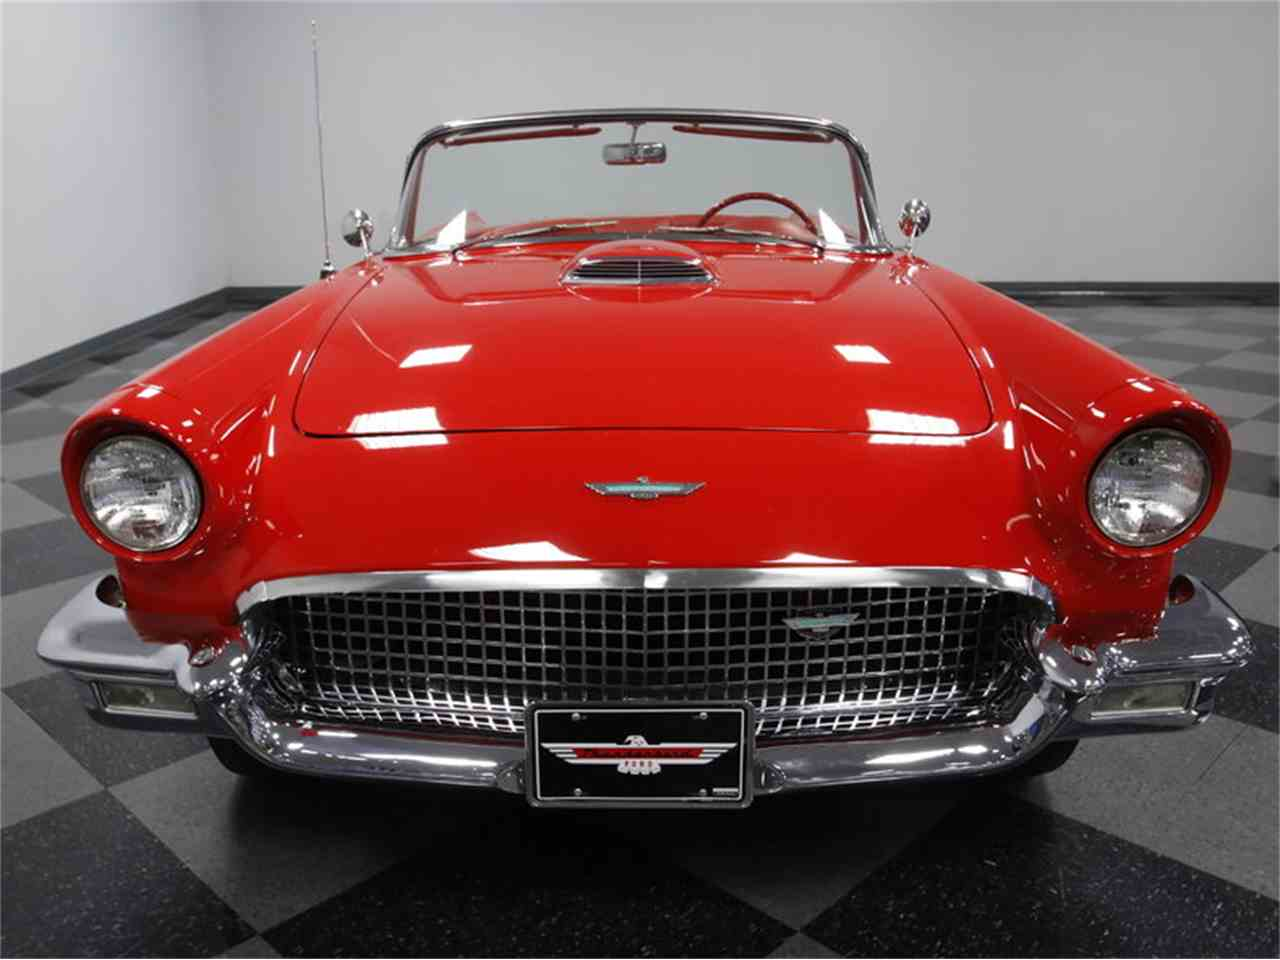 Large Picture of Classic '57 Ford Thunderbird located in North Carolina - $41,995.00 - LSNS